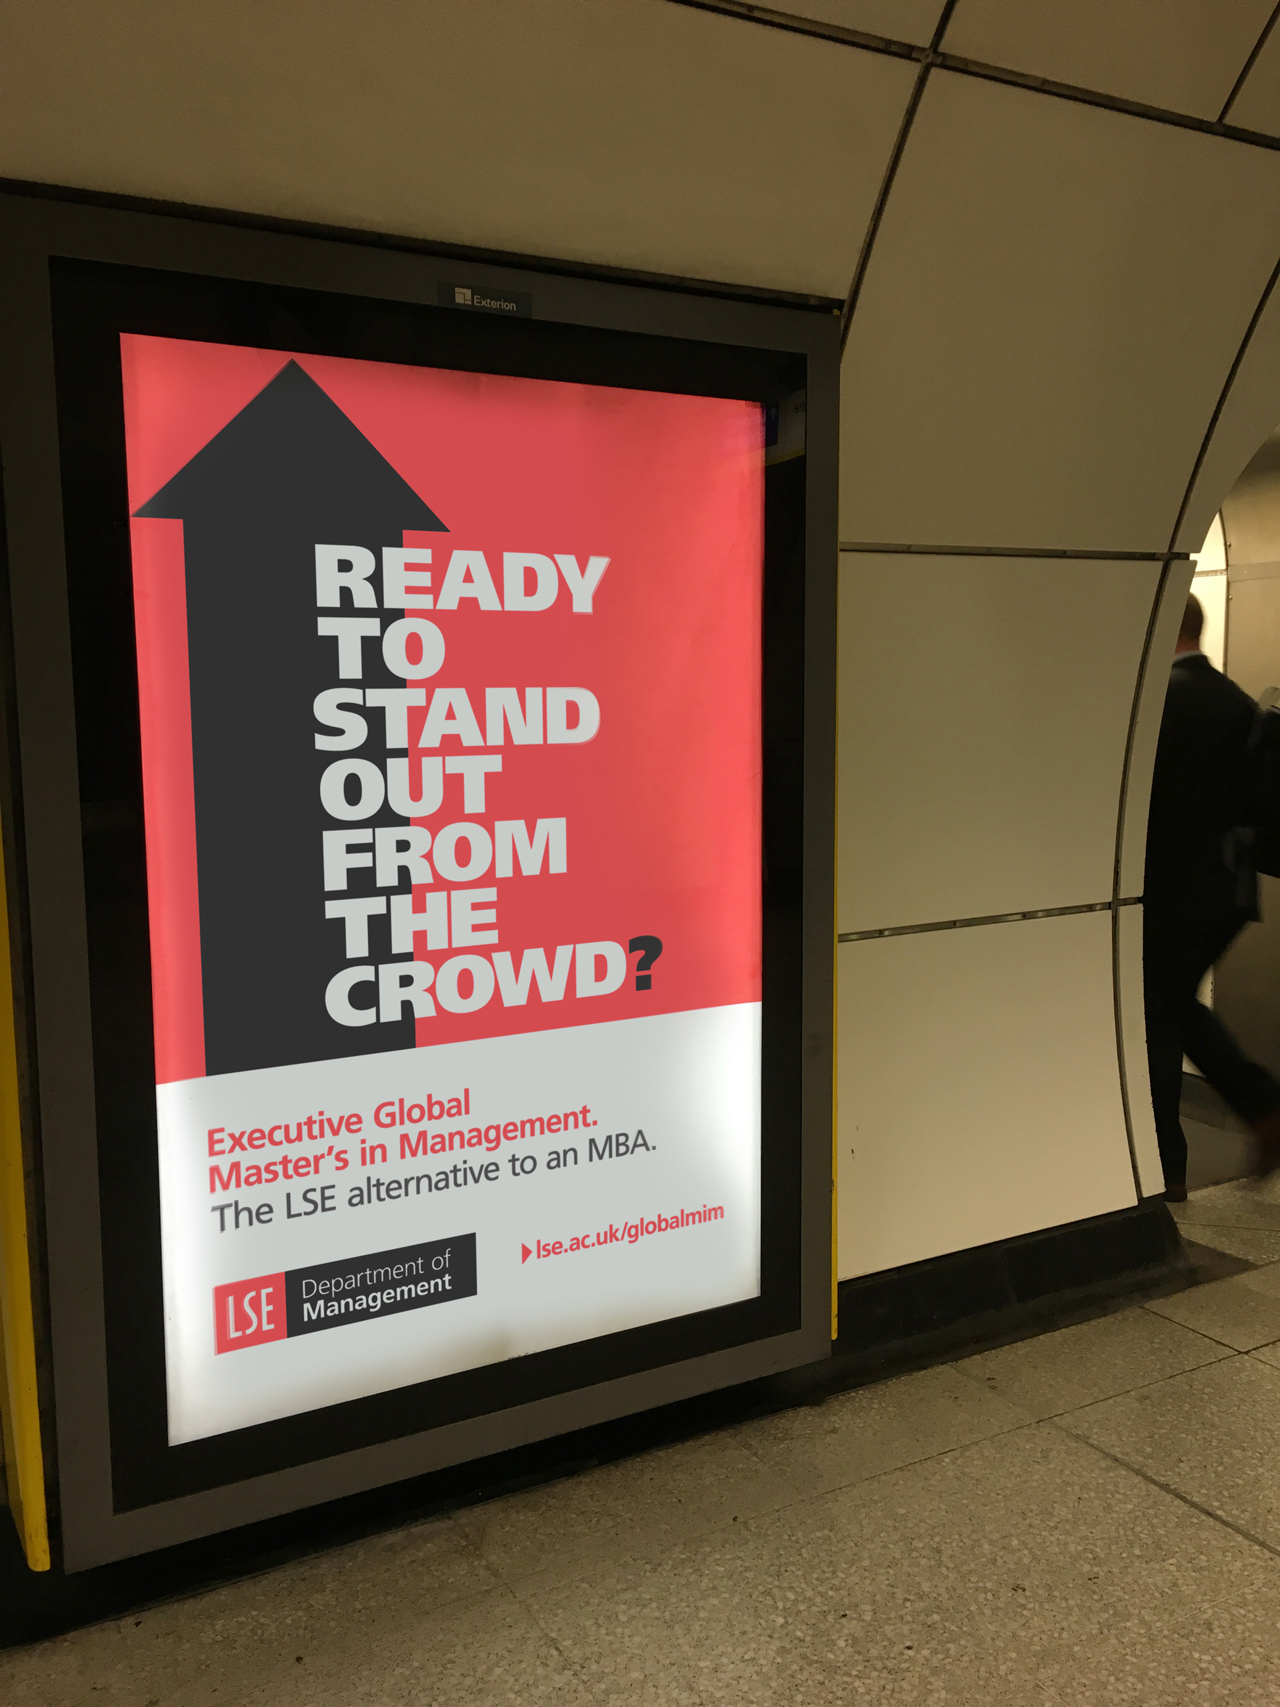 Advertising creative for LSE in London's Underground